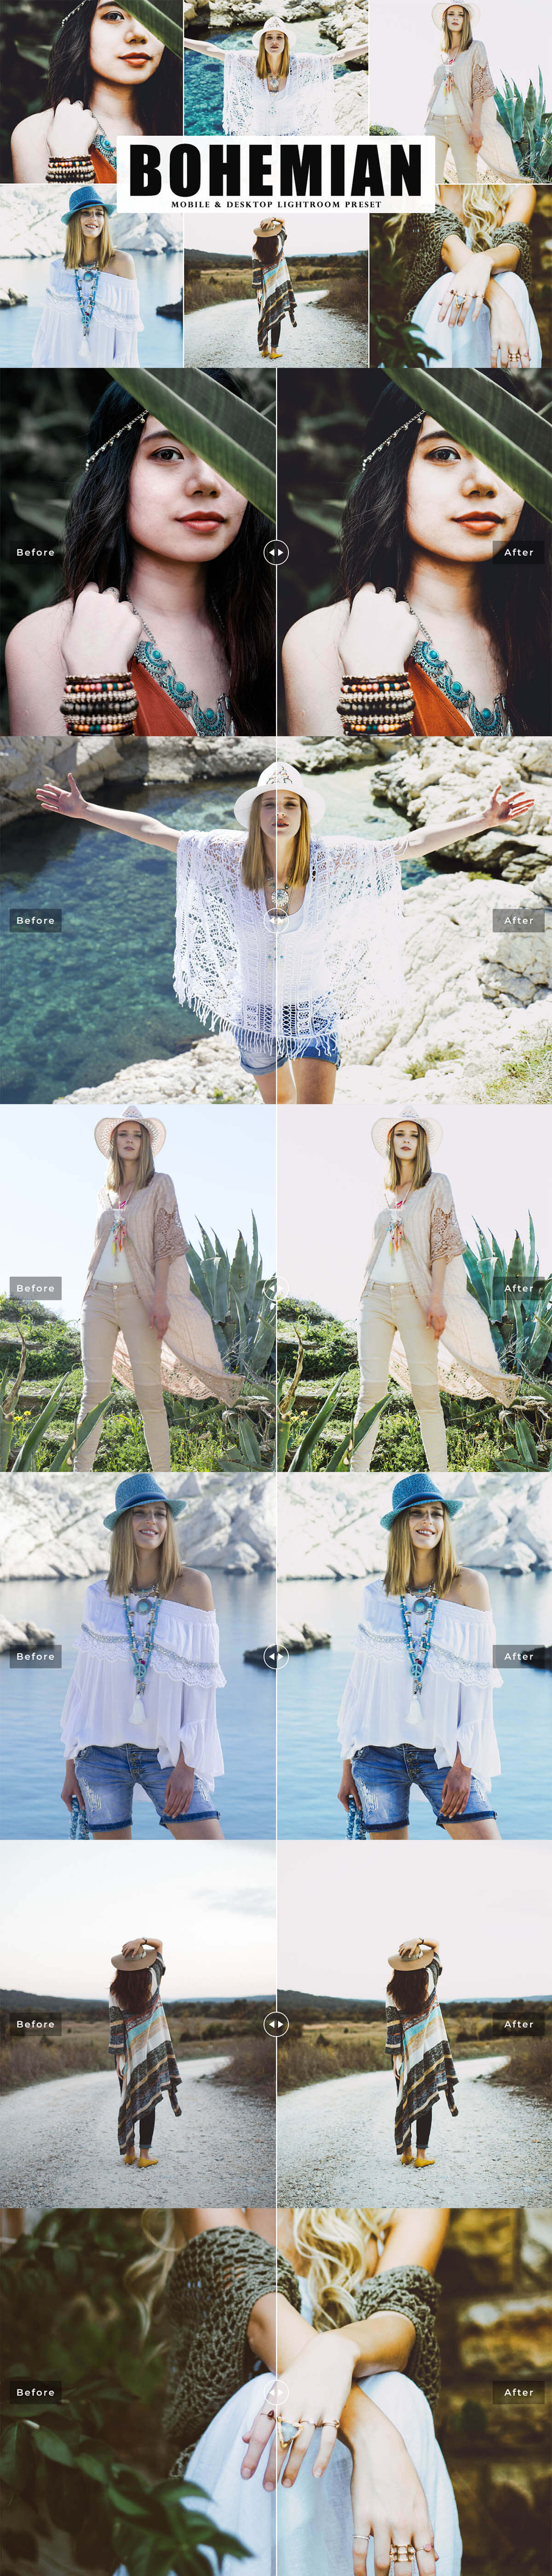 e Bohemian Lightroom Preset